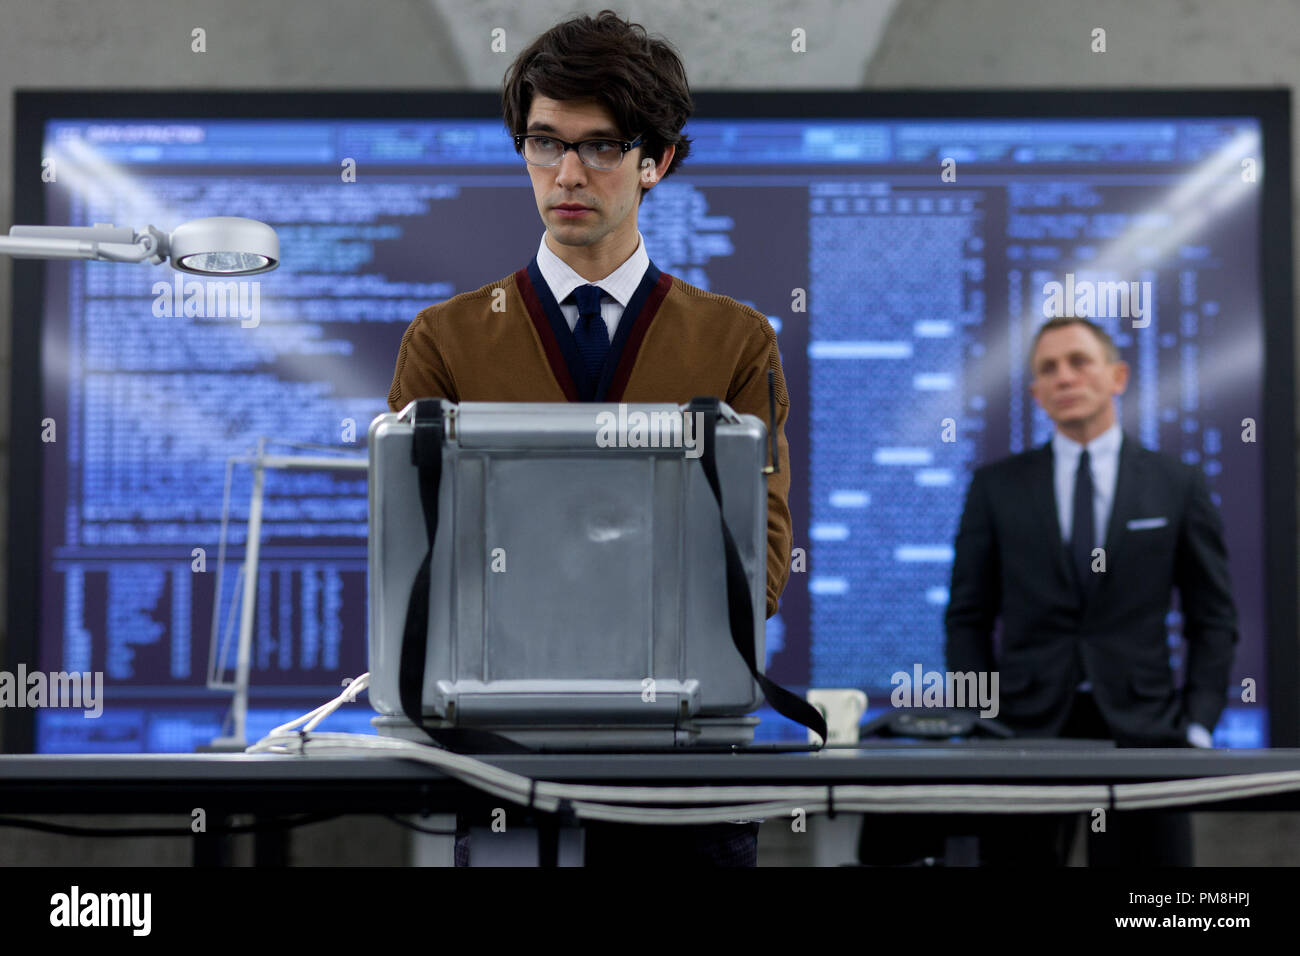 Ben Whishaw stars as Q and Daniel Craig stars as James Bond in Metro-Goldwyn-Mayer Pictures/Columbia Pictures/EON ProductionsÕ action adventure SKYFALL. - Stock Image